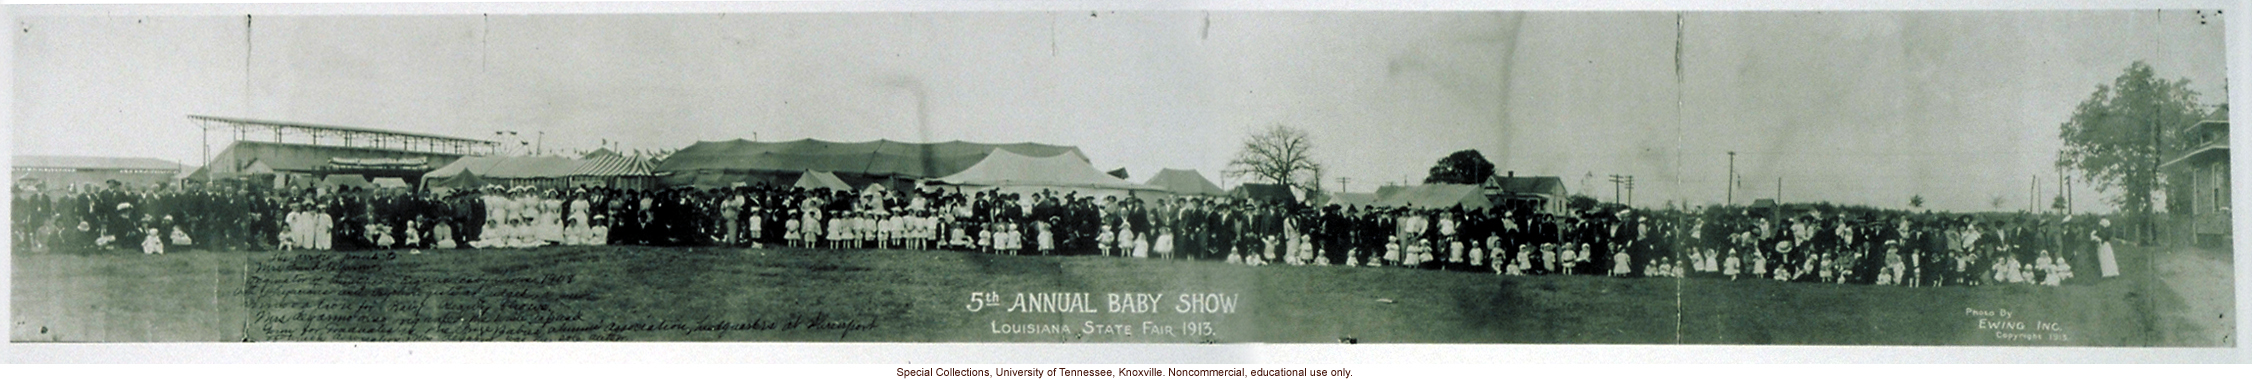 &quote;5th Annual Baby Show, Louisiana State Fair 1913&quote;